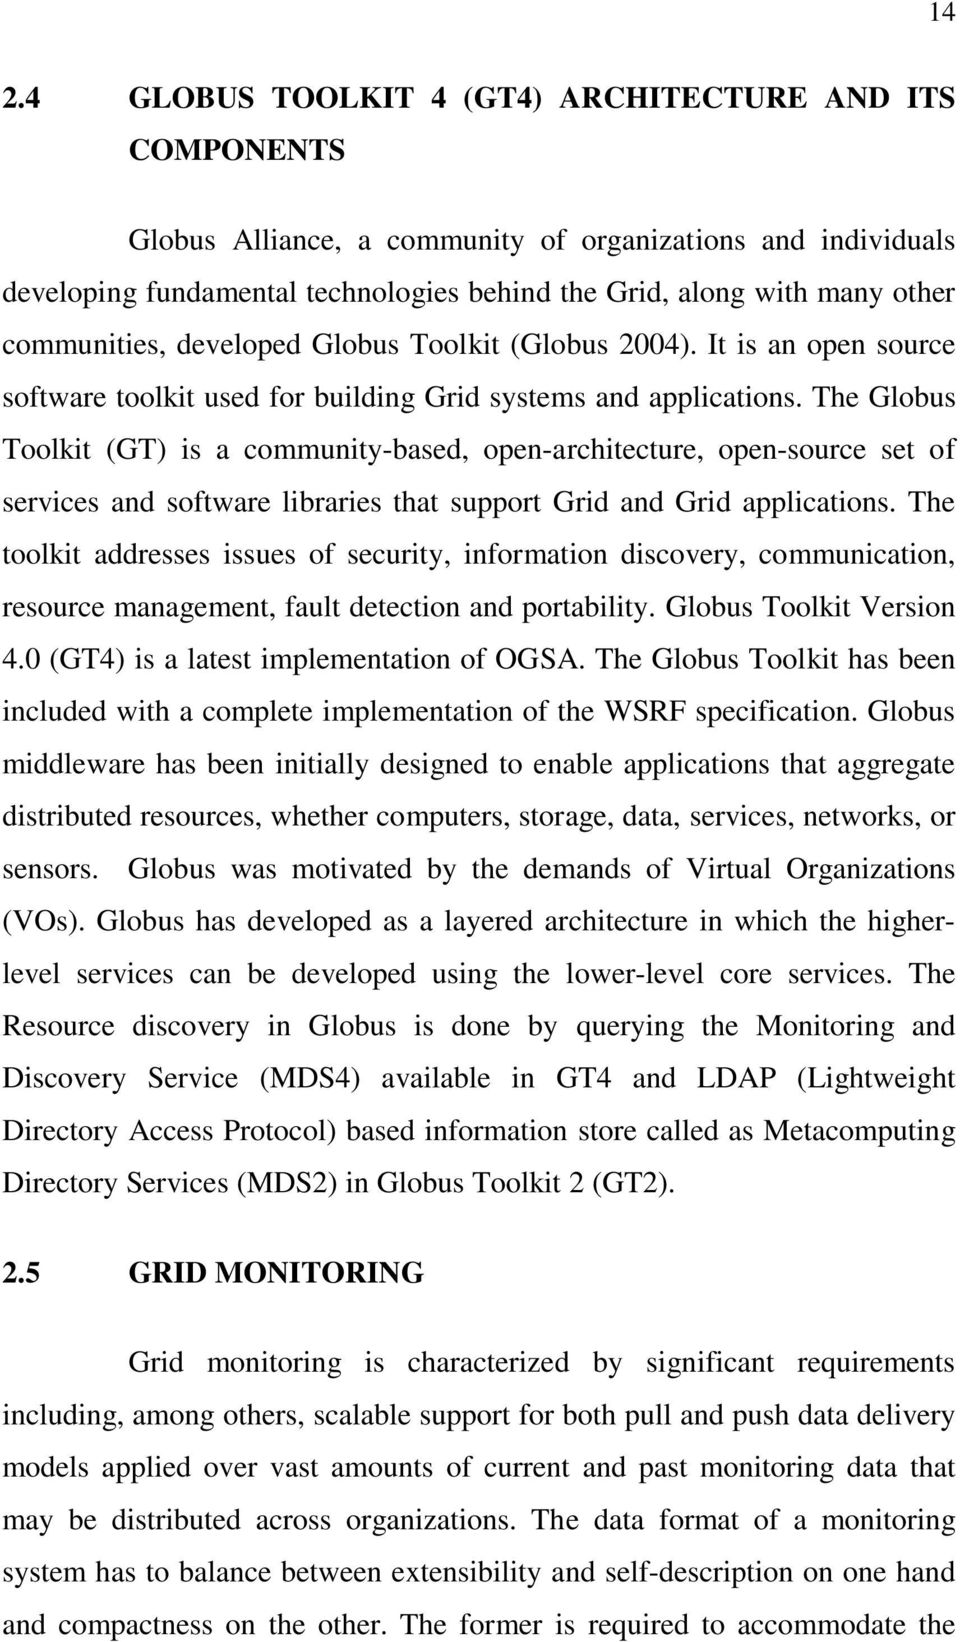 The Globus Toolkit (GT) is a community-based, open-architecture, open-source set of services and software libraries that support Grid and Grid applications.